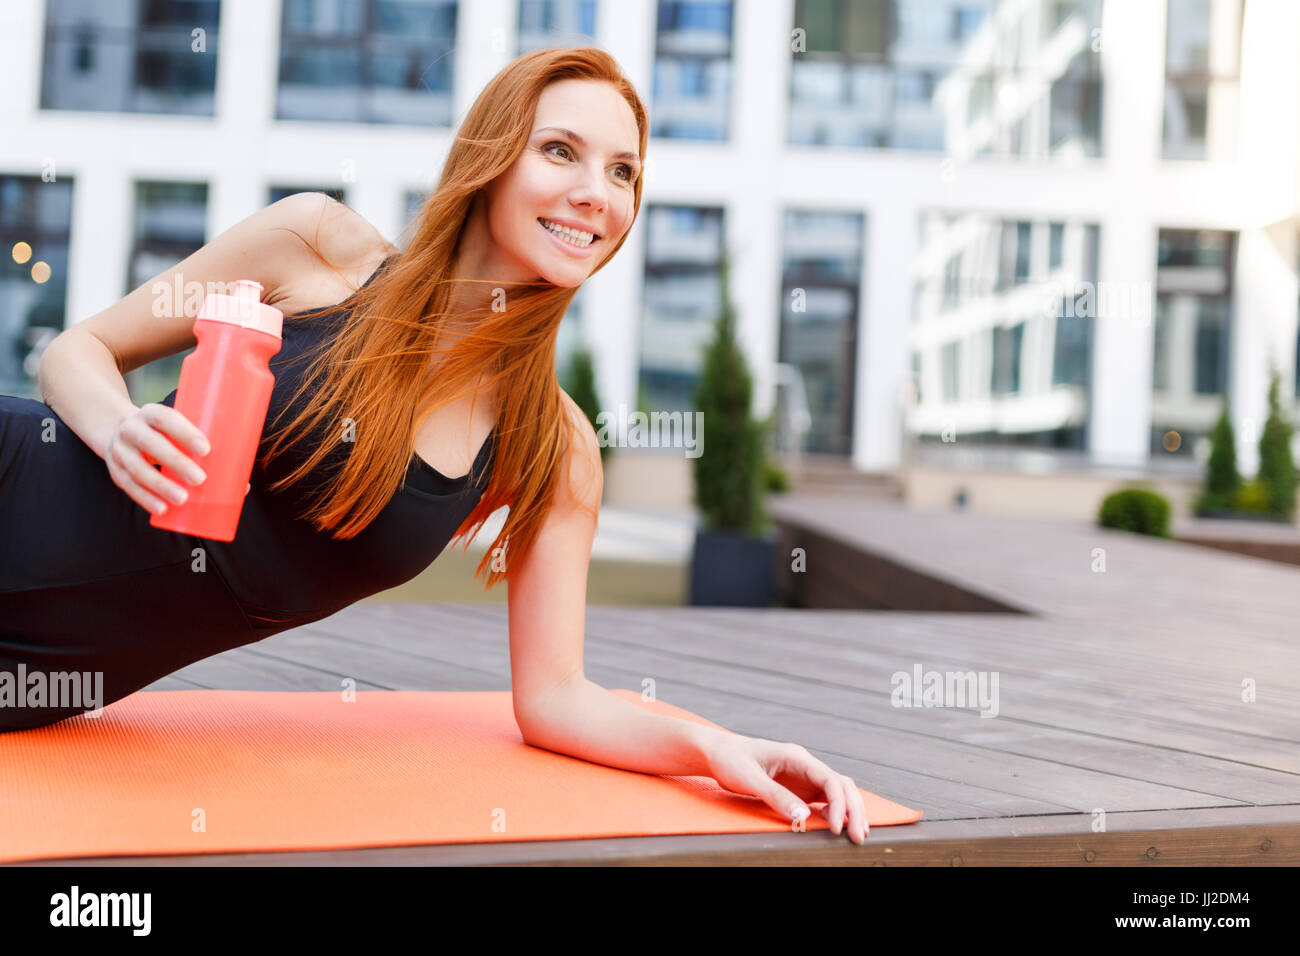 Sportswoman doing exercises on rug Banque D'Images